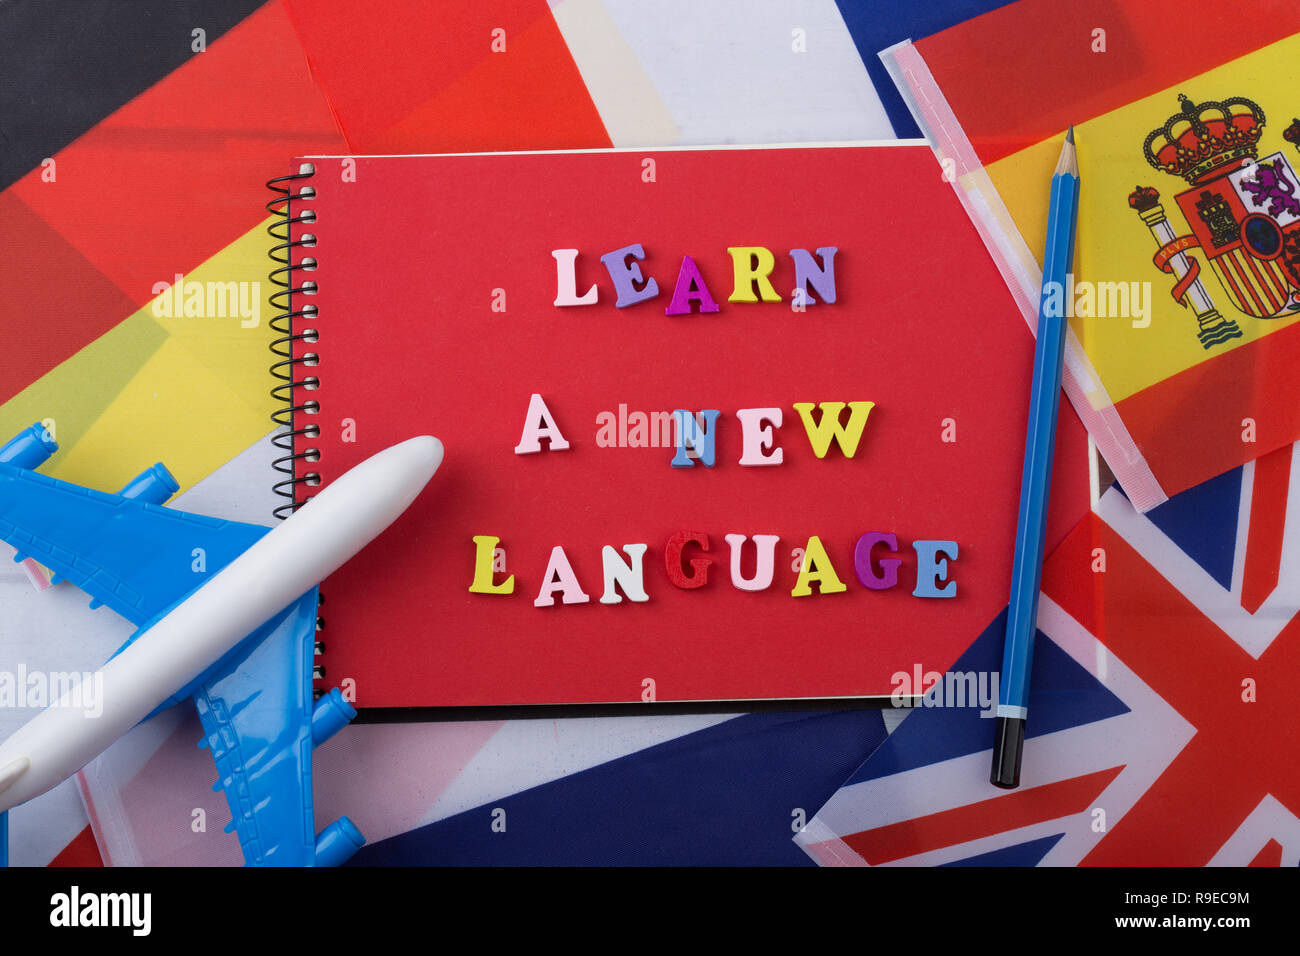 Learning languages concept - red notepad and colorful wooden letters with text 'Learn a new language', flags, model airplane, pencil - Stock Image